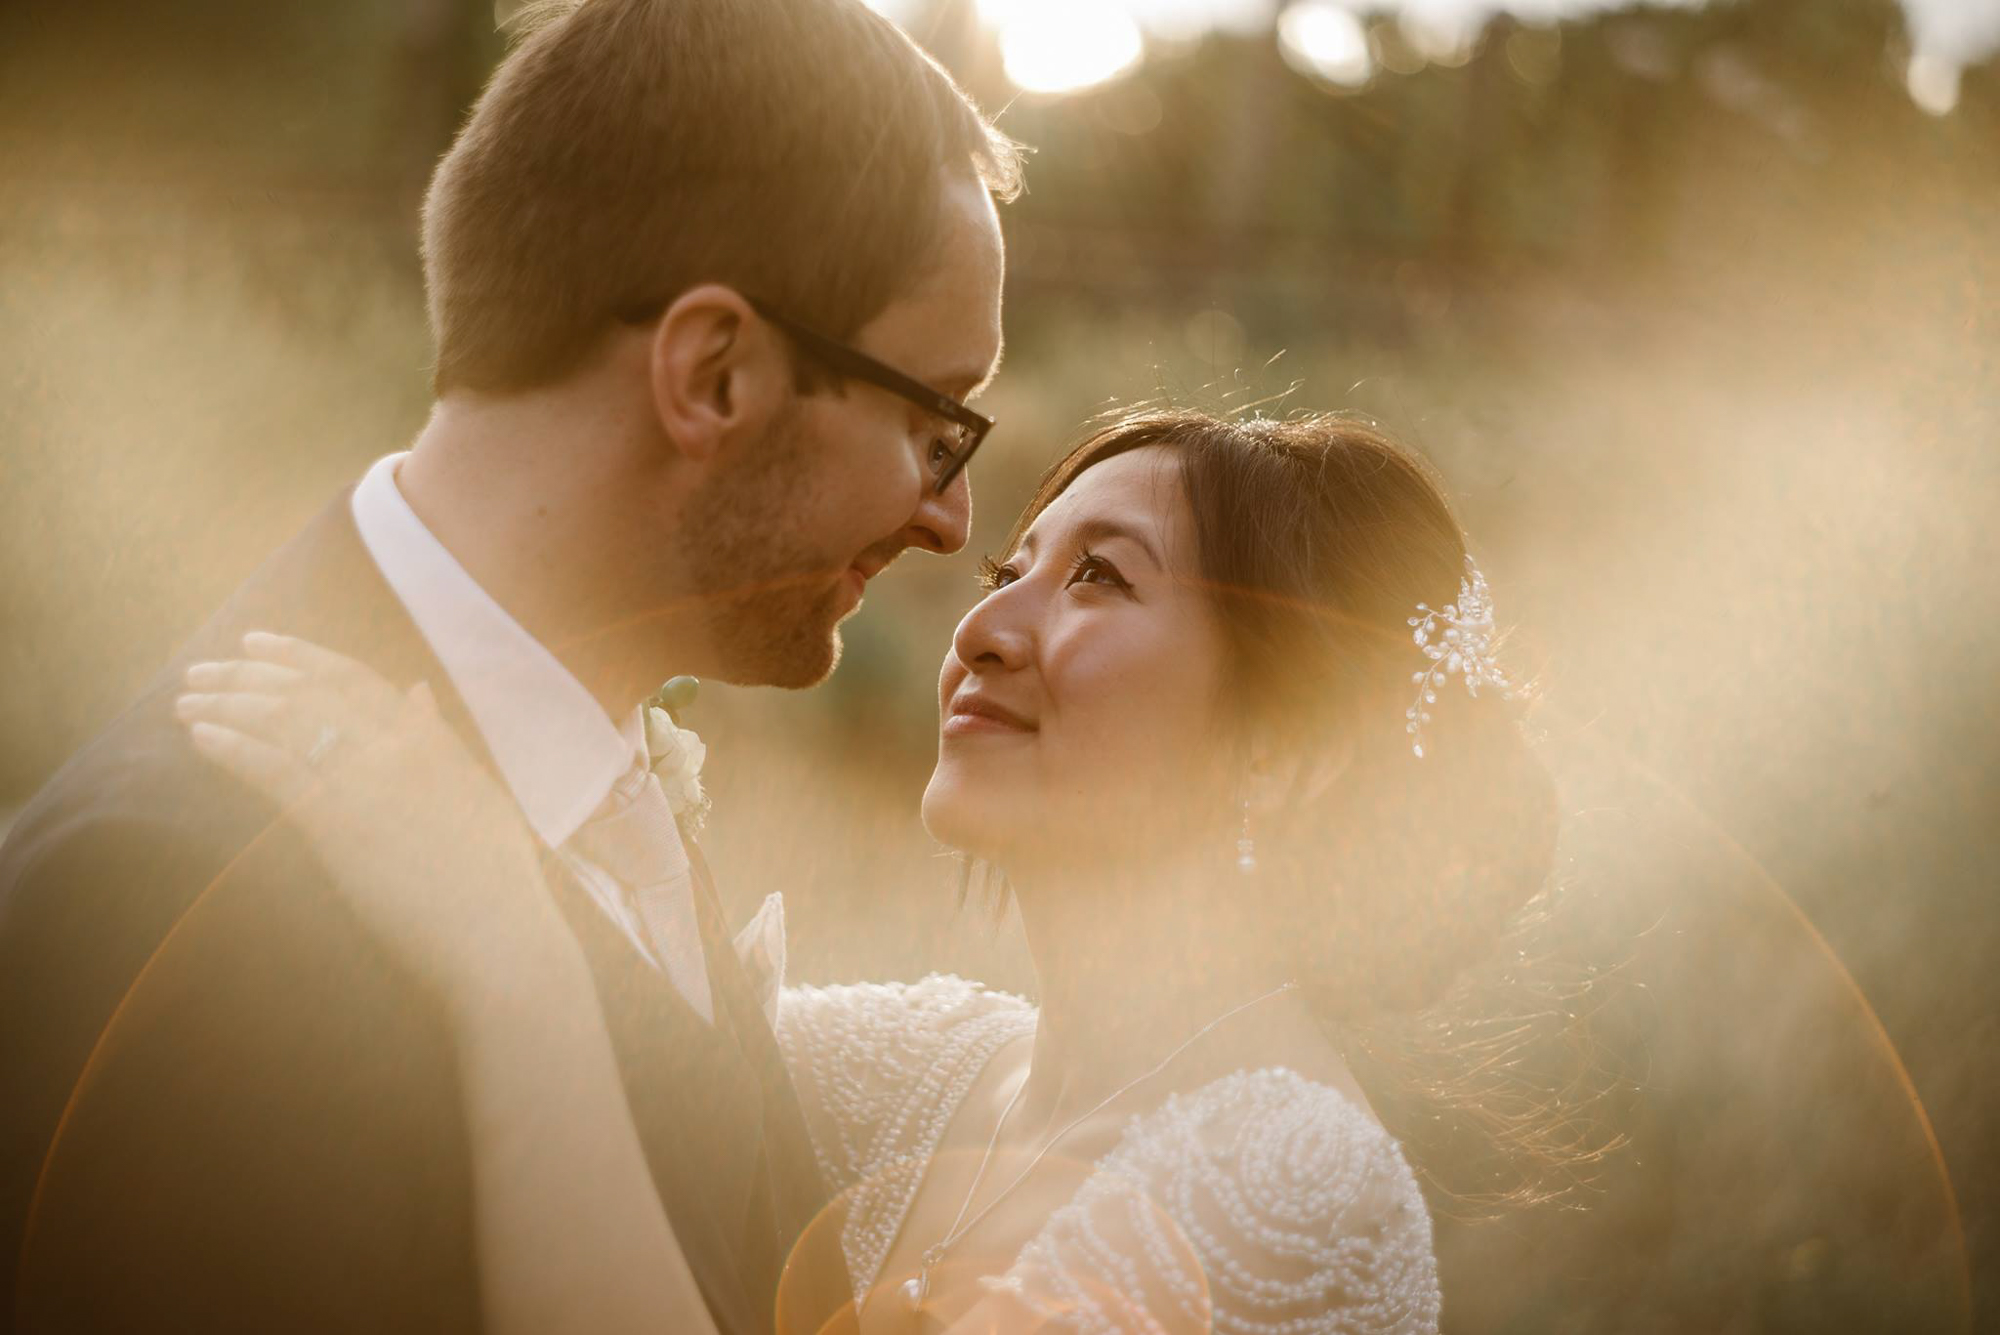 Photo of a bride and a groom in the golden light taken by a wedding photographer